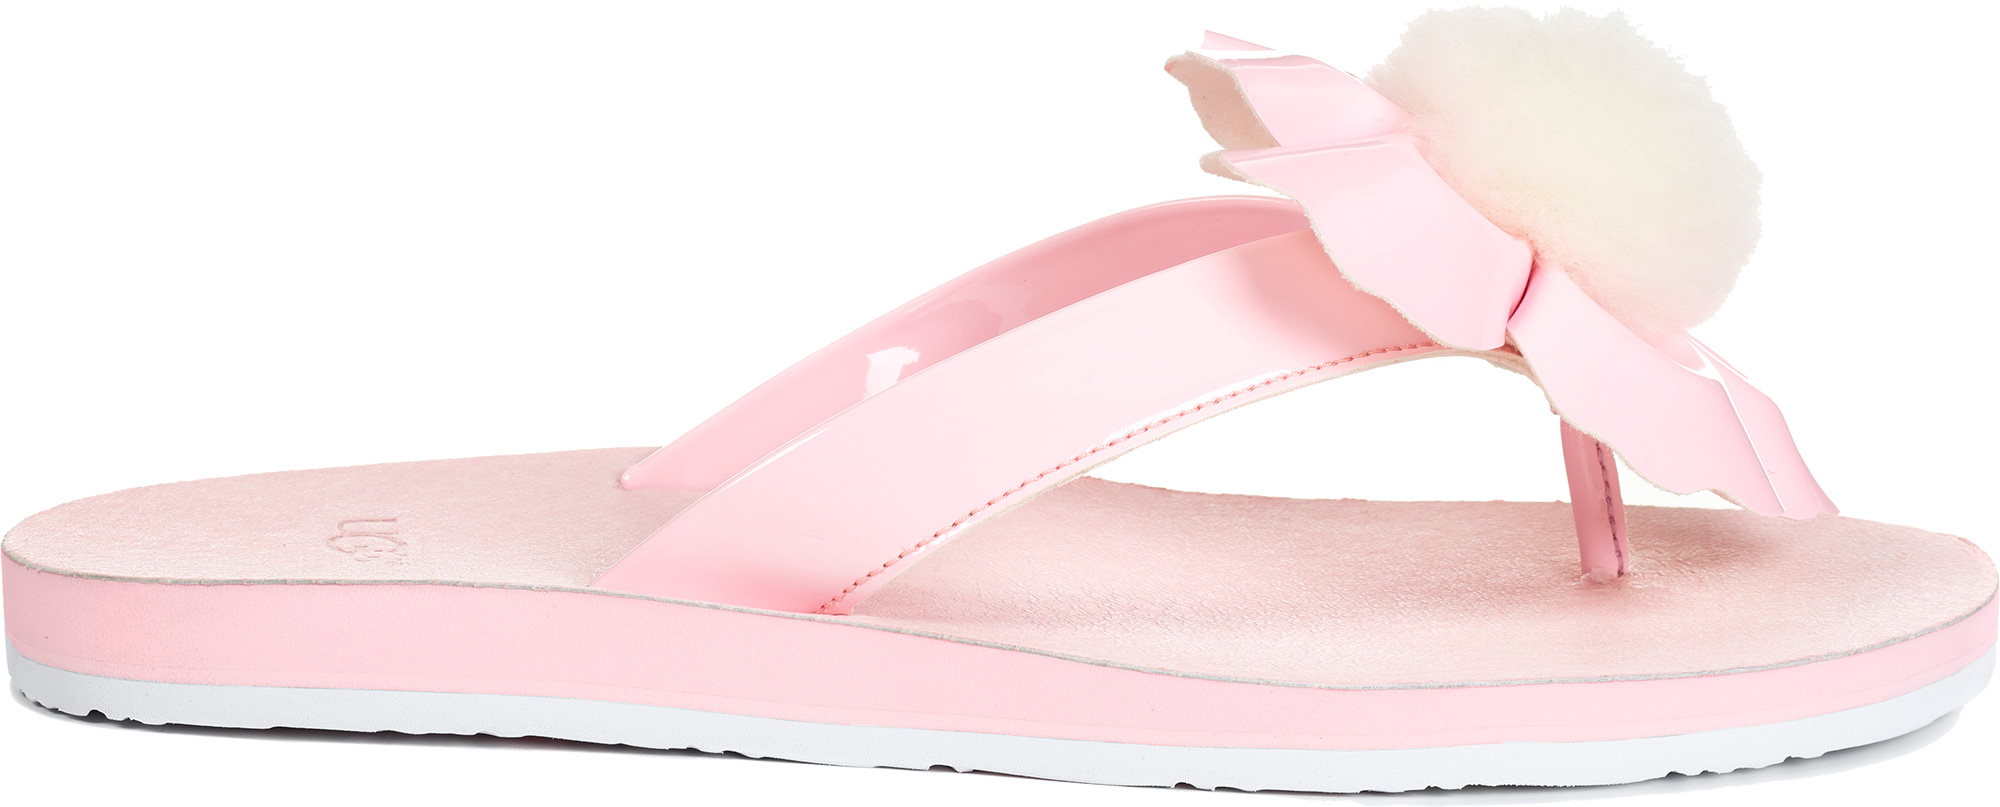 315cf2478114 UGG Women s Poppy Flip Flops Patent Flower and Fluffy Pom Uk4 Seashell Pink.  About this product. Picture 1 of 5  Picture 2 of 5 ...